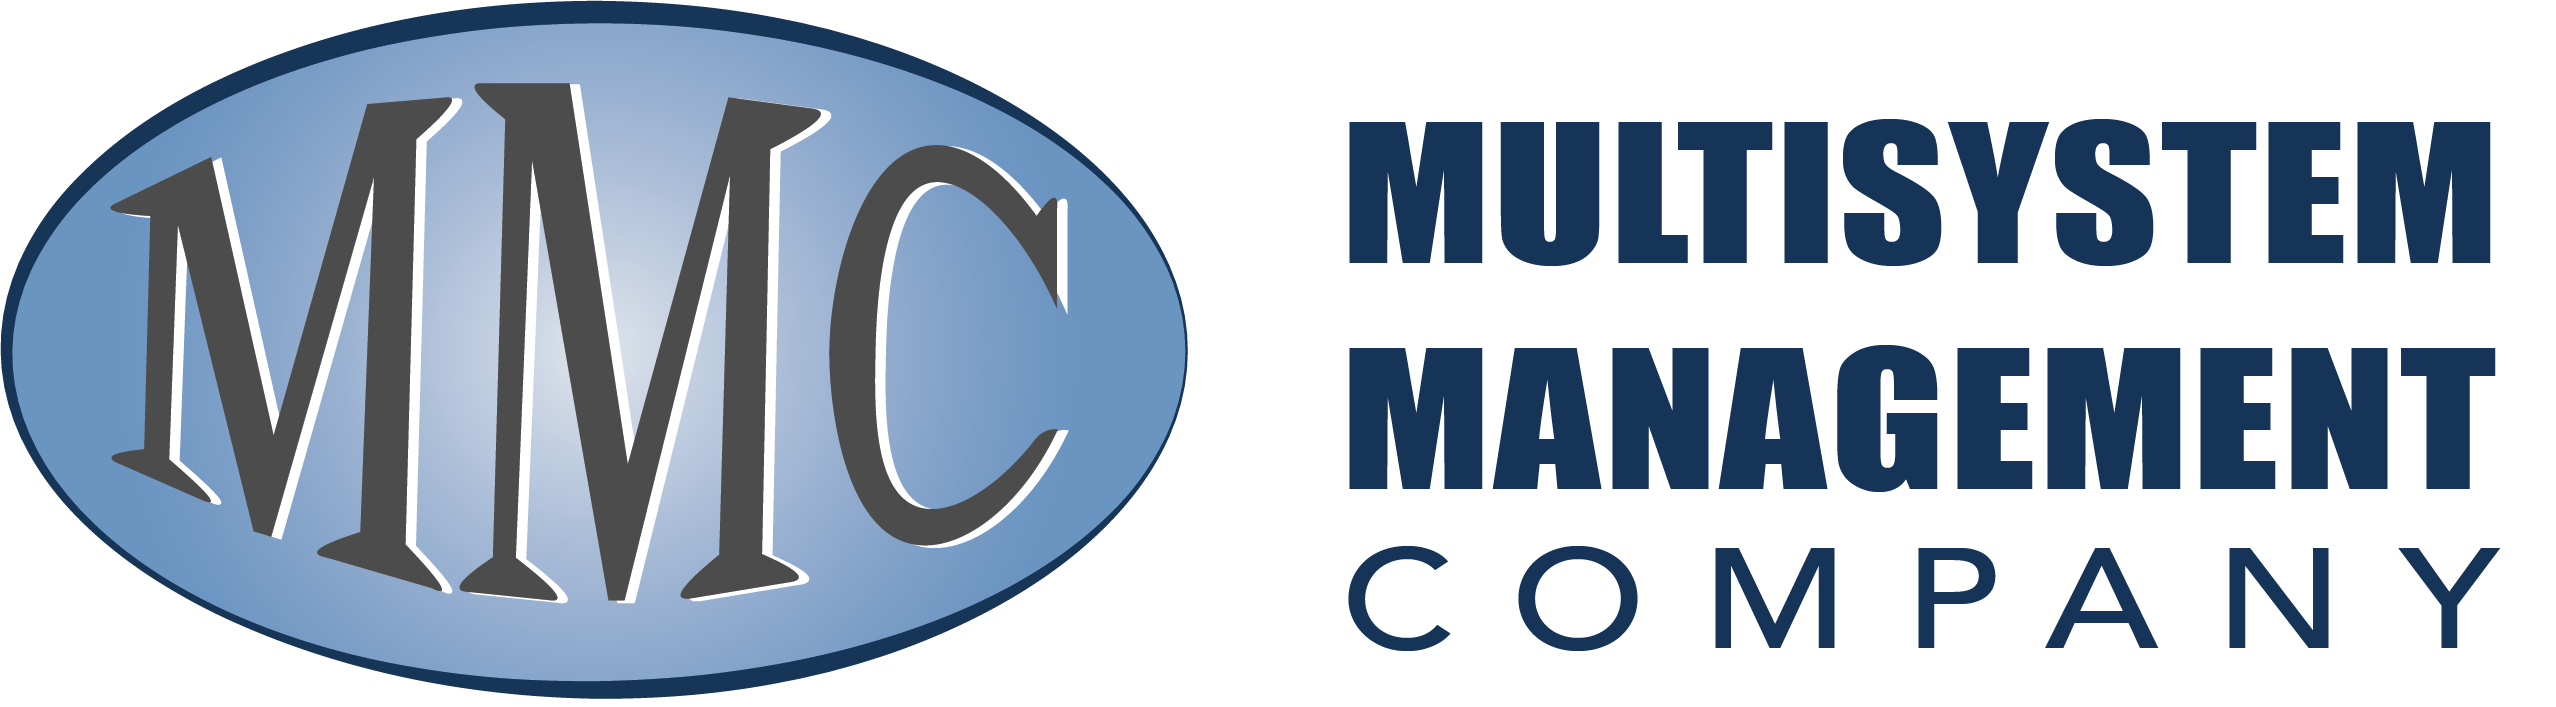 Multisystem Management Company Janitorial Services Chicago | Office, Commercial Cleaning Chicago